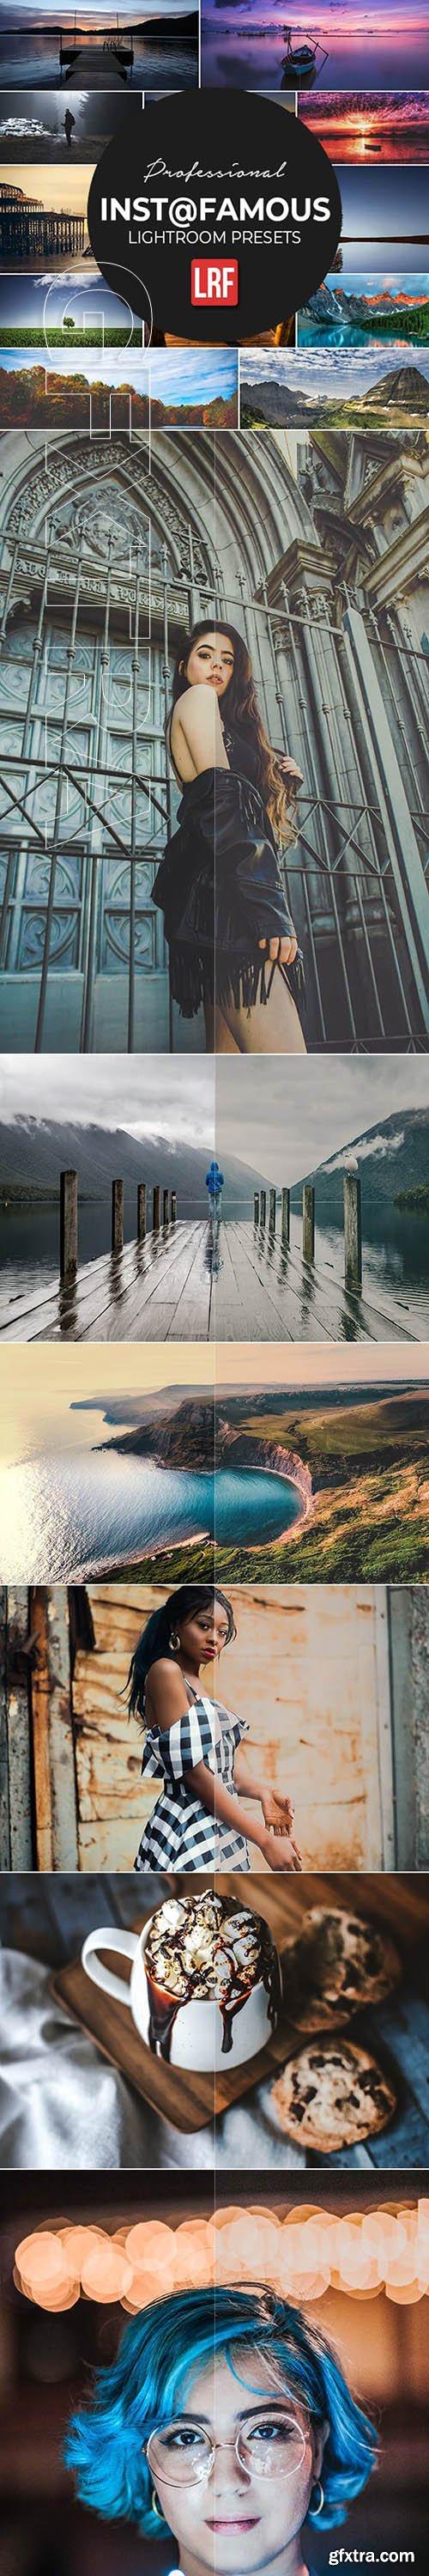 GraphicRiver - 10 Instafamous Lightroom Presets 23122279